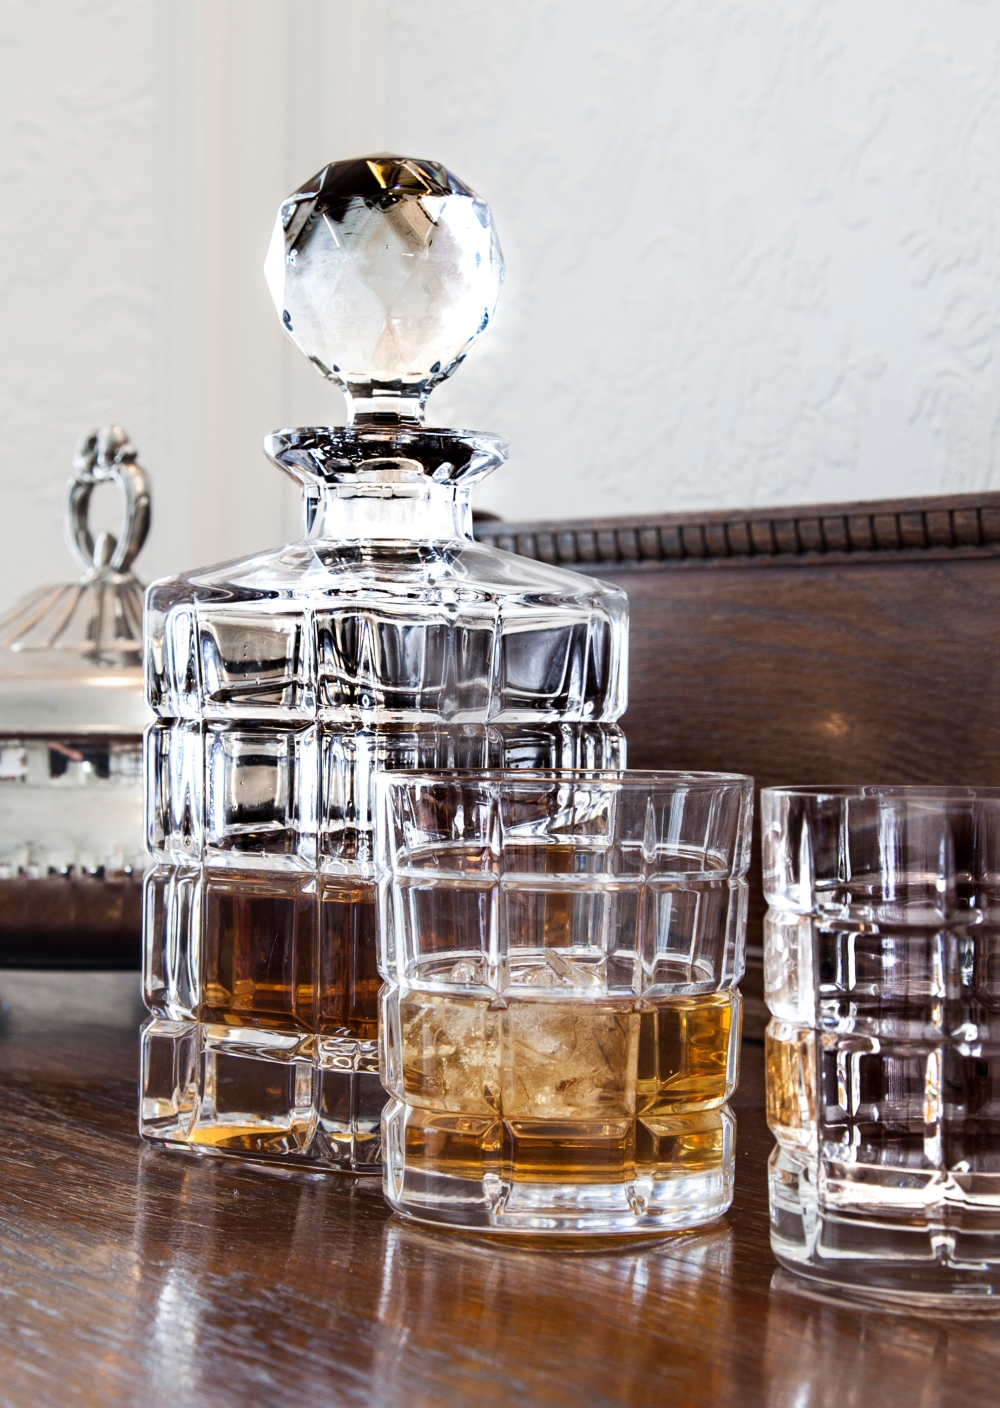 TIME SQUARE WHISKY GLASS